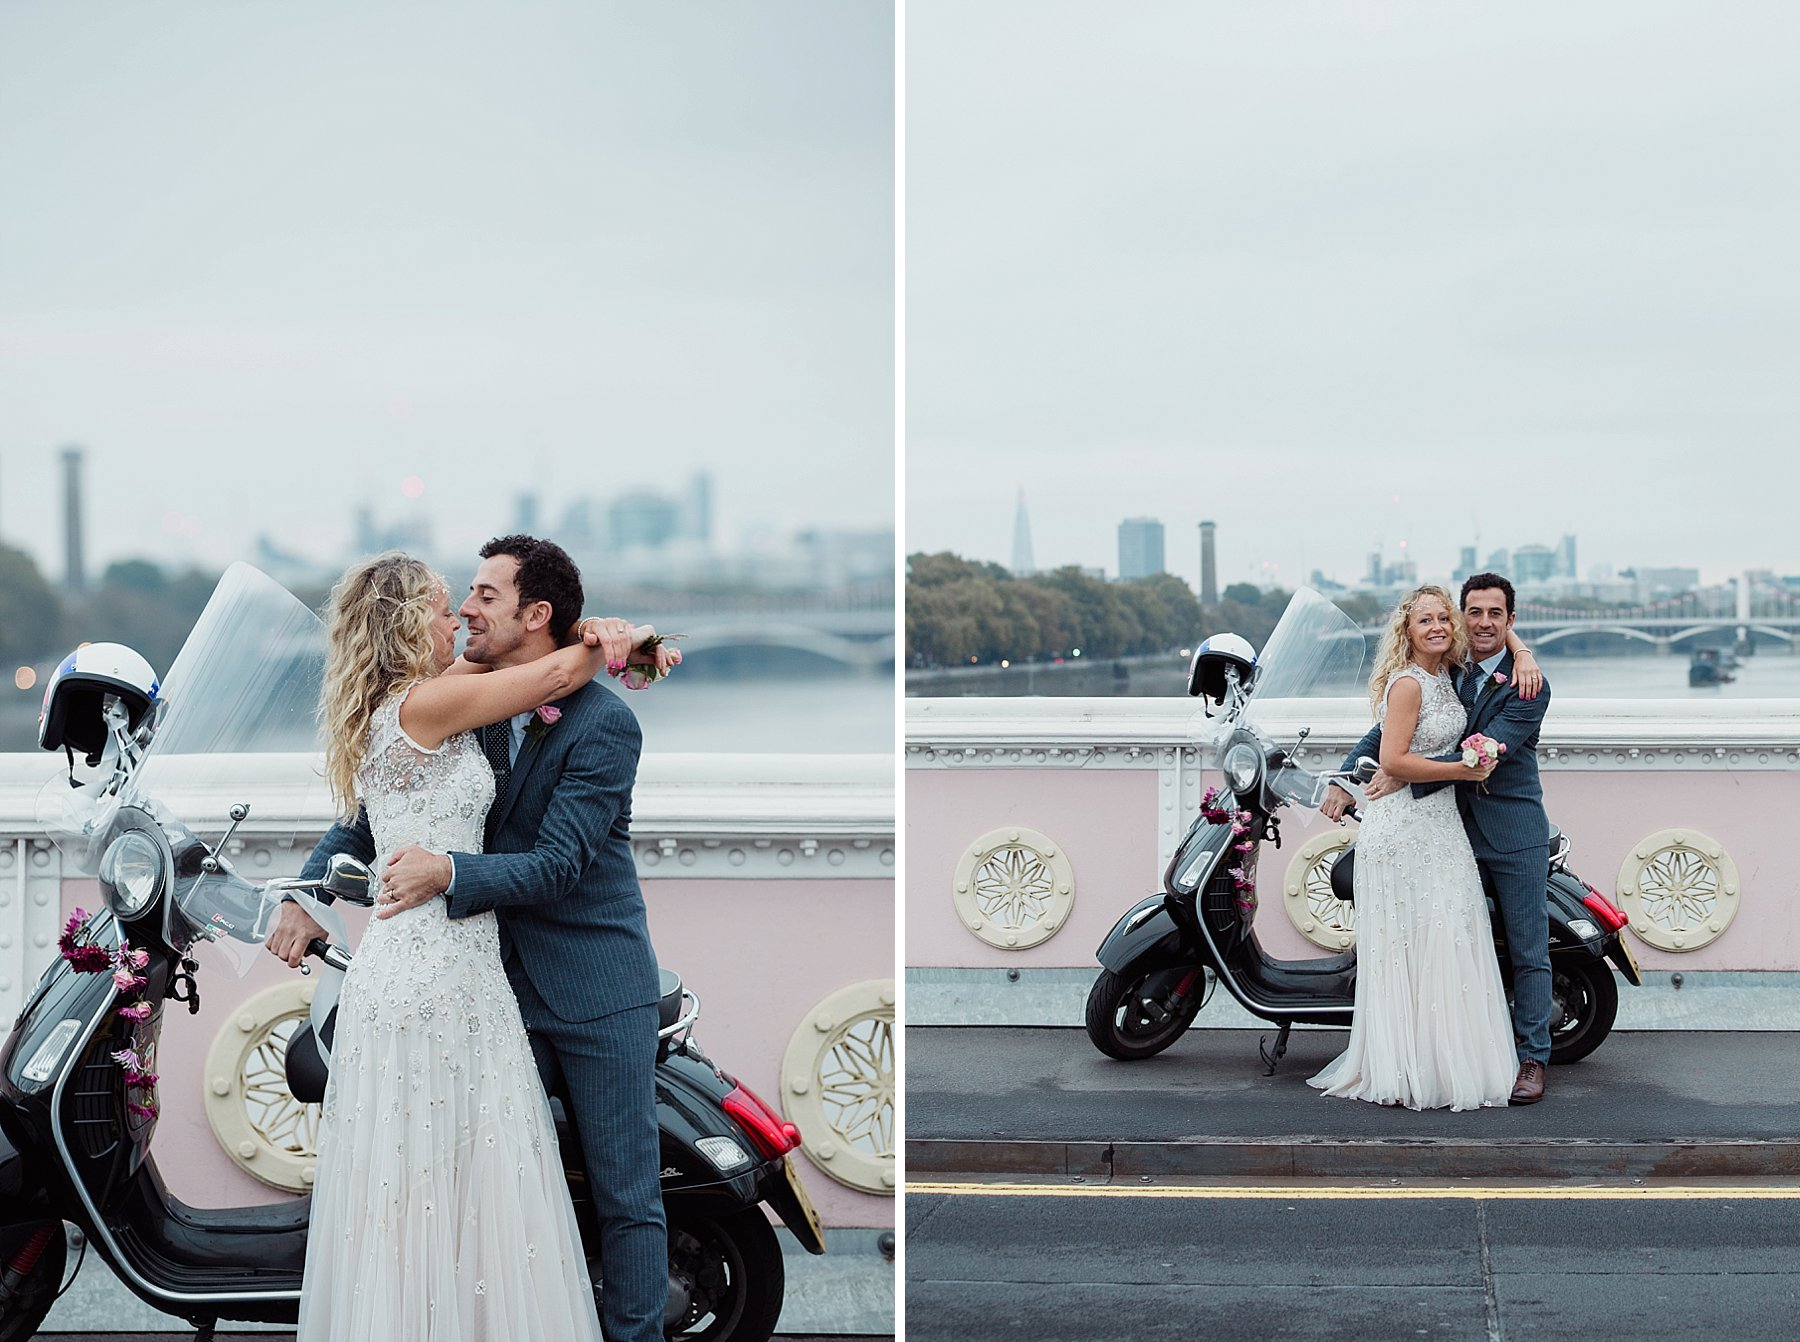 sunrise post wedding photoshoot bride groom vespa London background.jpg